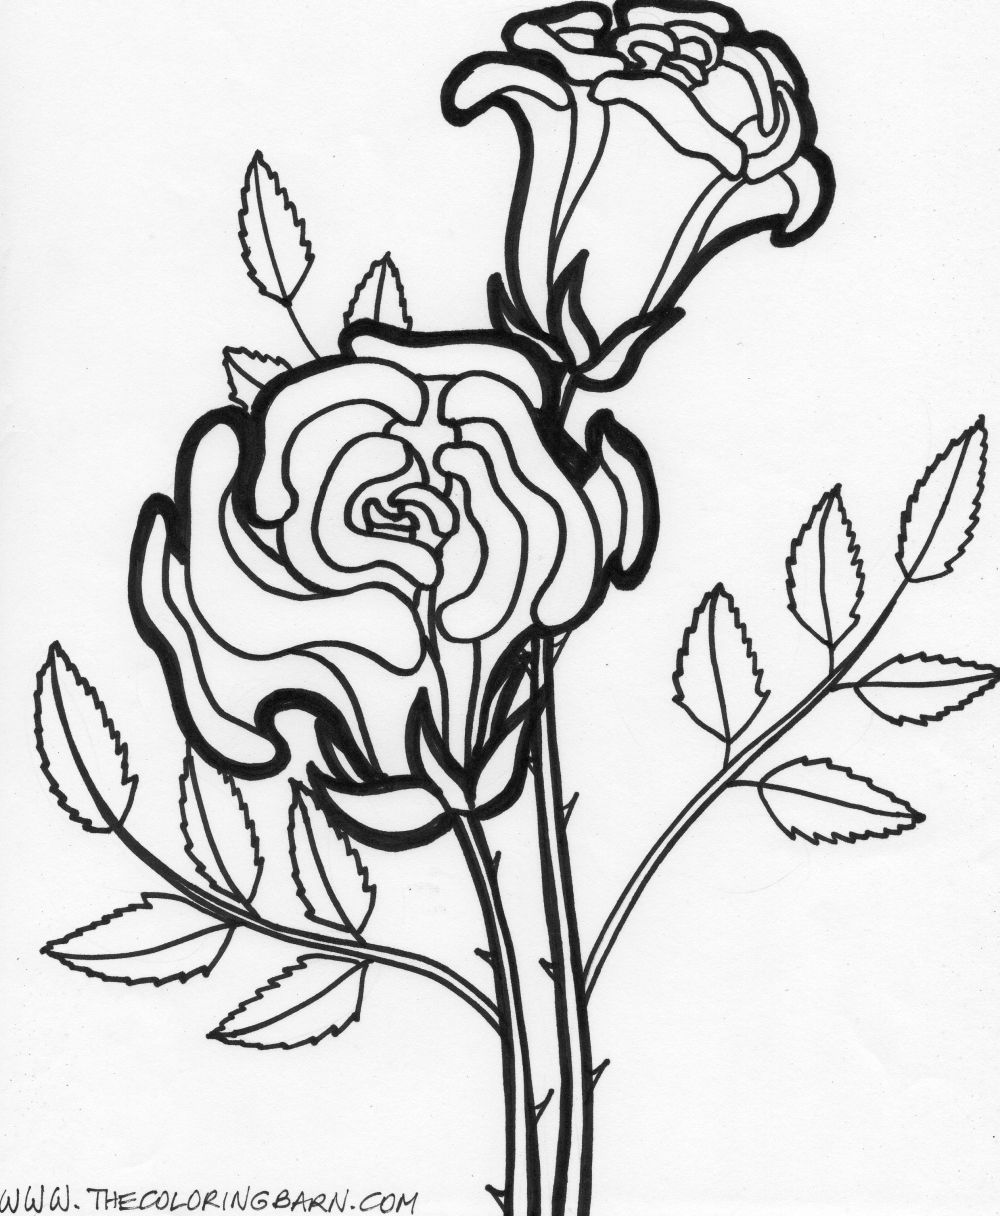 coloring pages flowers printable coloring pages worksheets simple flower coloring pages coloring pages printable flowers